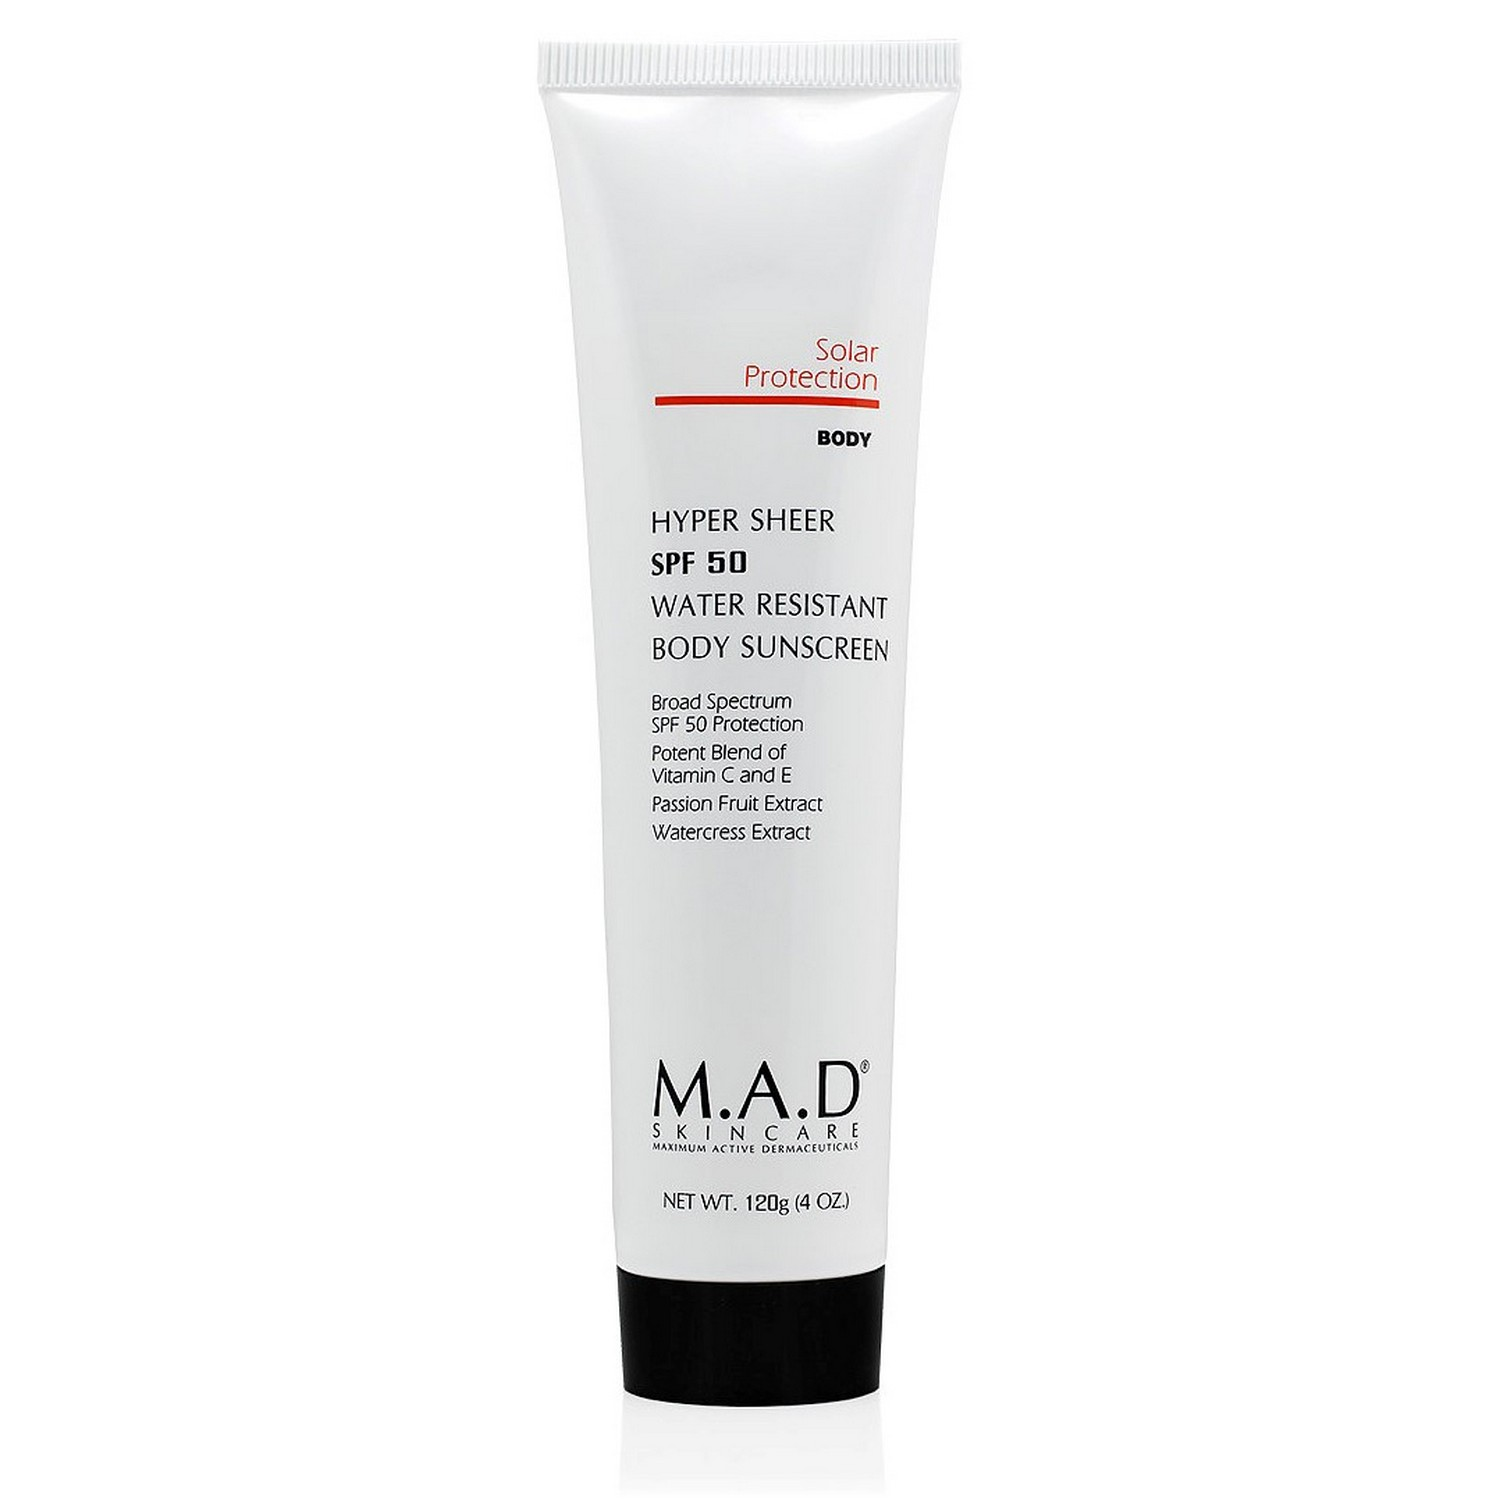 M.A.D SKINCARE HYPER SHEER SPF 50 WATER RESISTANT BODY SUNSCREEN (120 g / 4.0 oz)